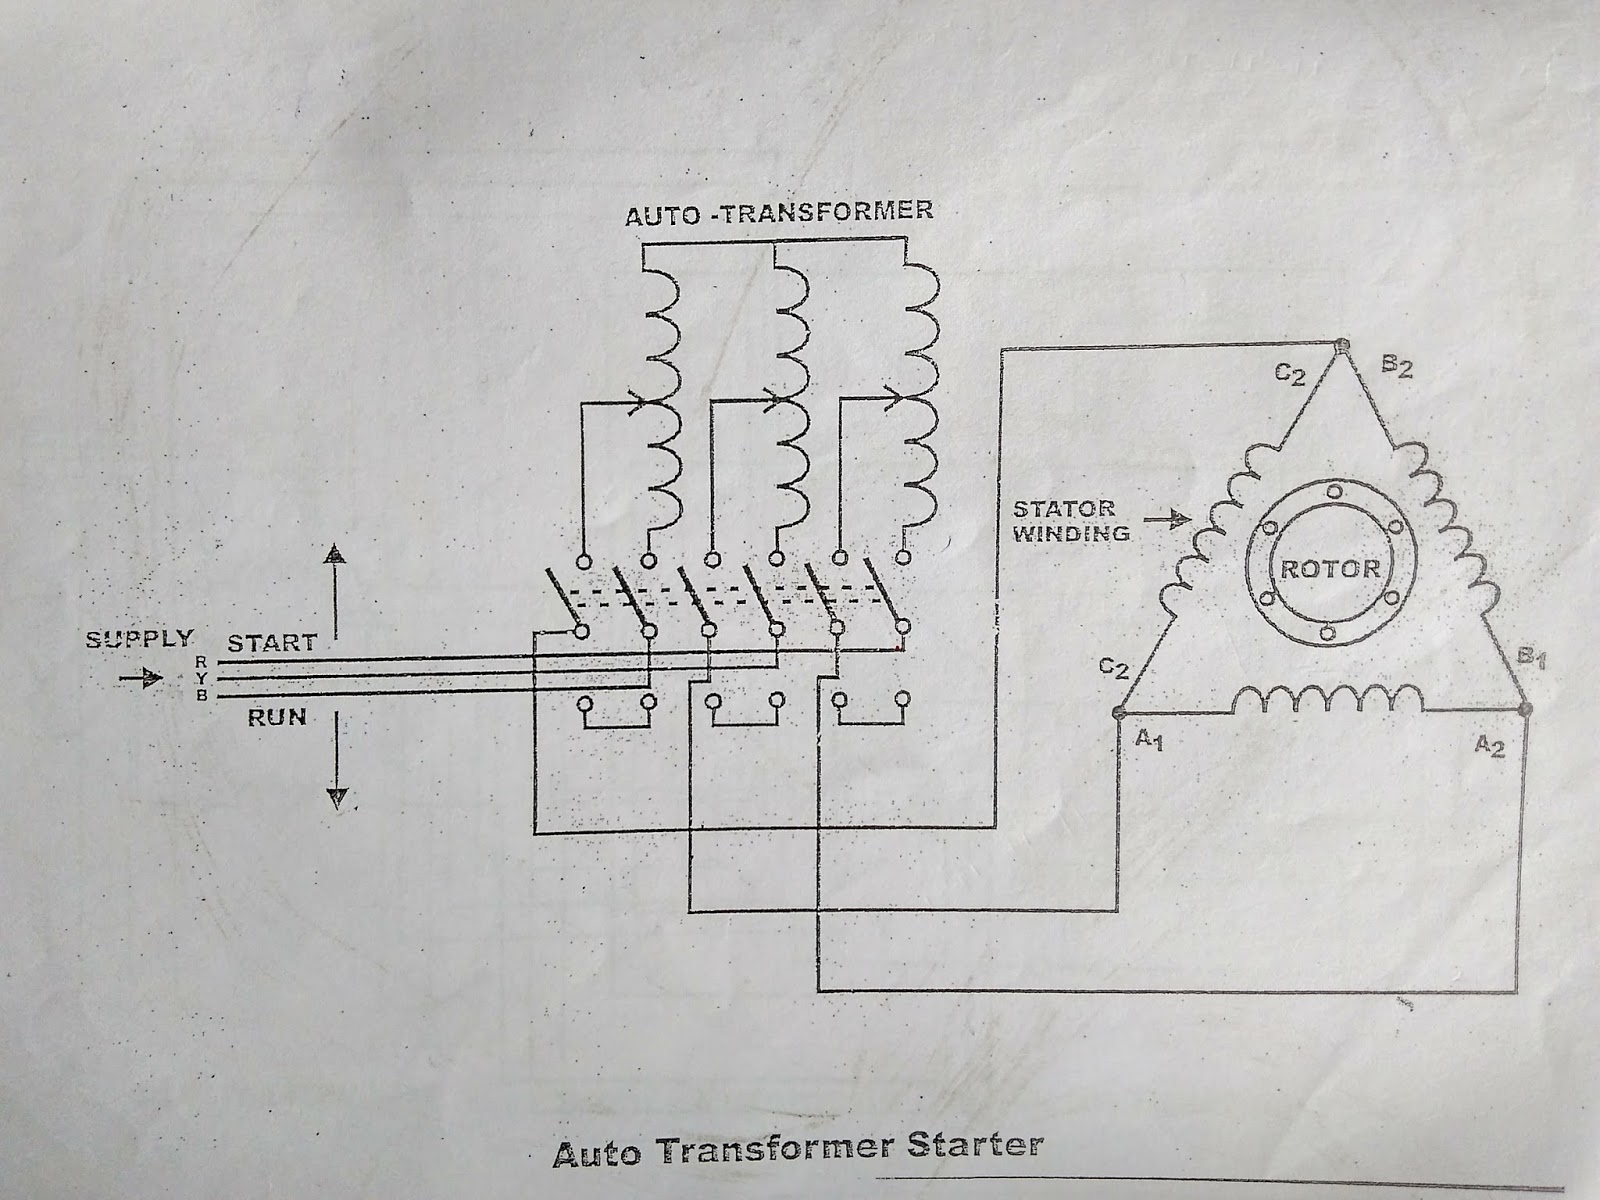 Autotransformer starter working wiring and control diagram autotransformer starter working wiring and control diagram asfbconference2016 Image collections